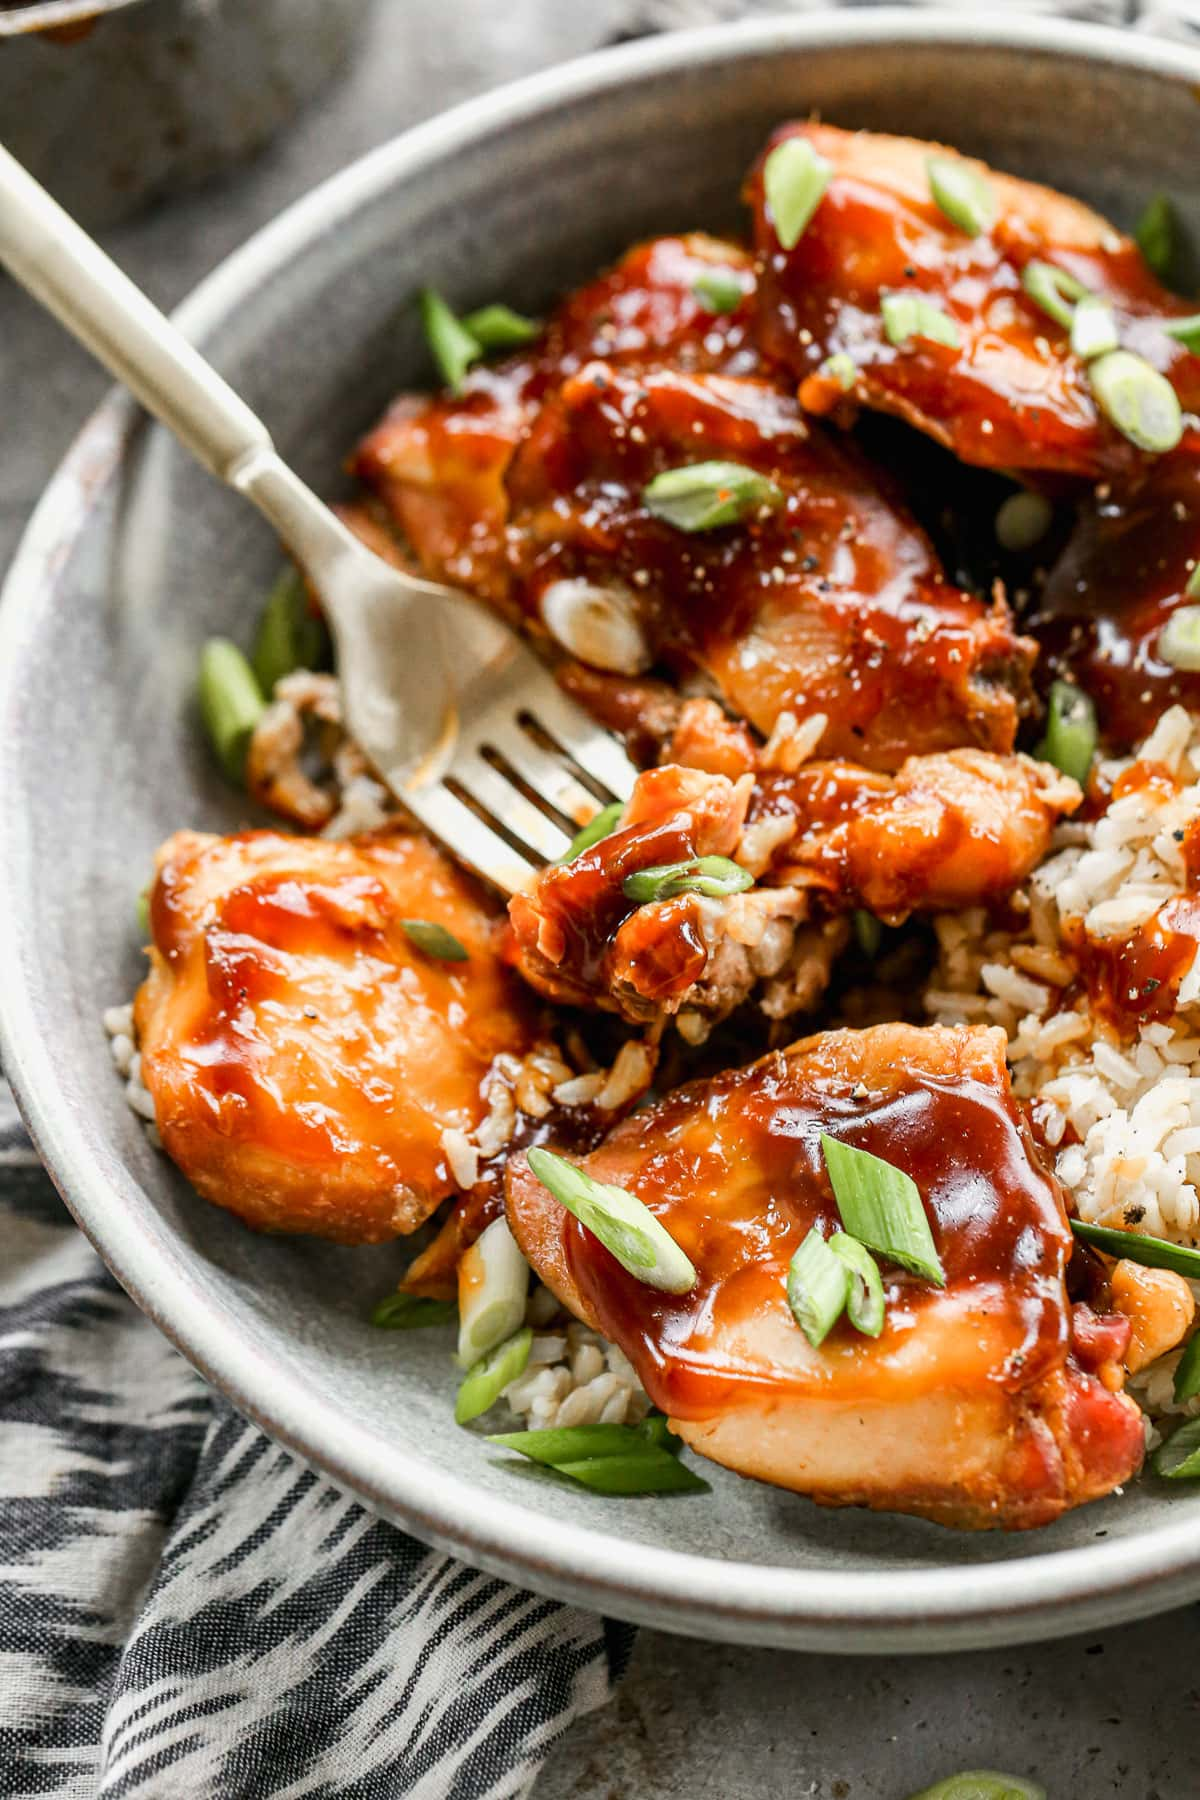 Crock Pot Bourbon Chicken recipe — so easy to make, and the sauce is sweet, sticky, and delicious! Our whole family loves it. Perfect slow cooker recipe to serve with rice for weeknight dinner. @wellplated